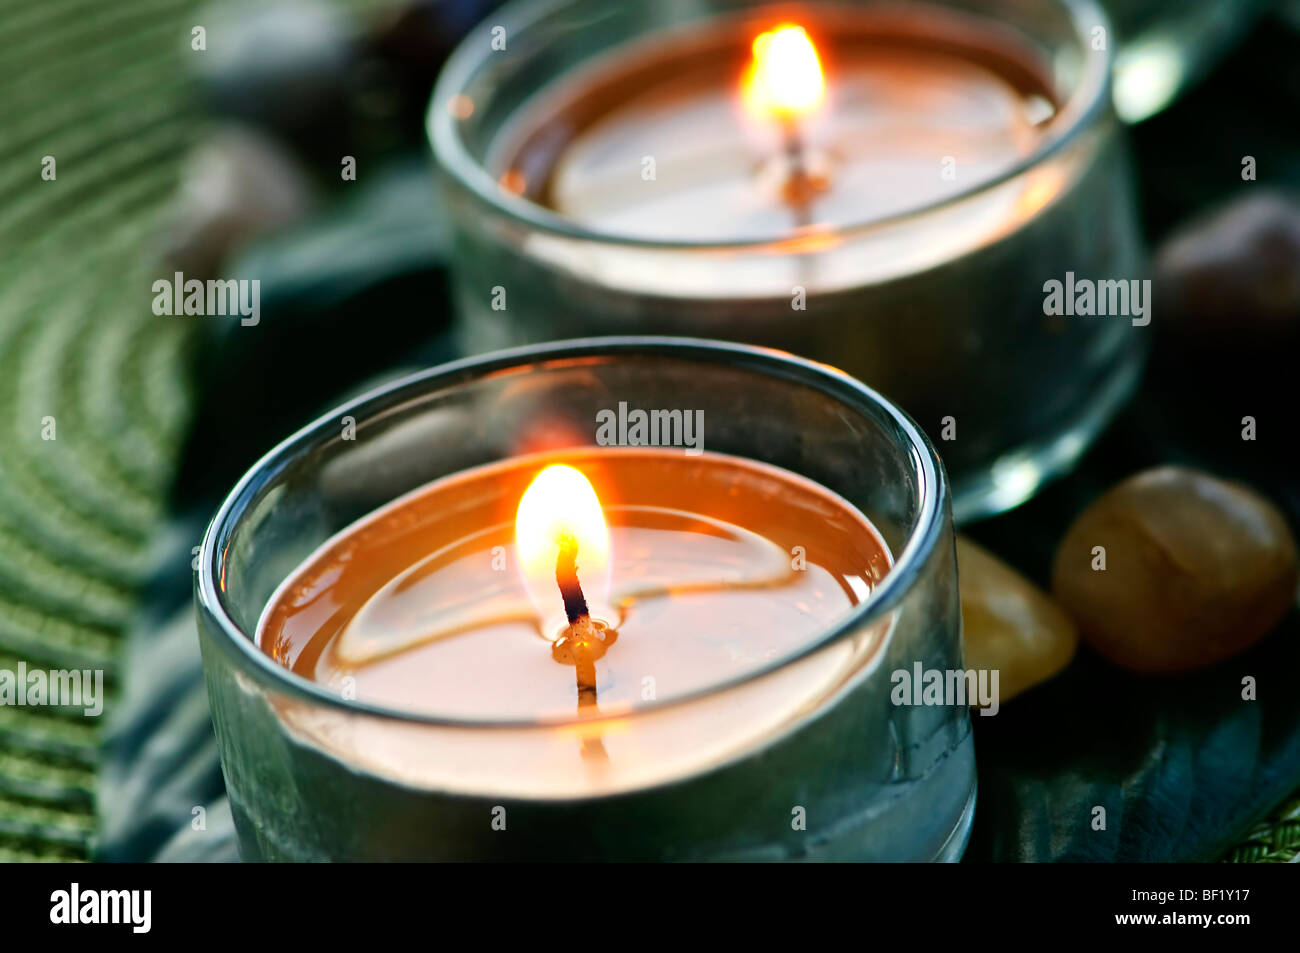 Burning candles in glass holders on green leaf - Stock Image